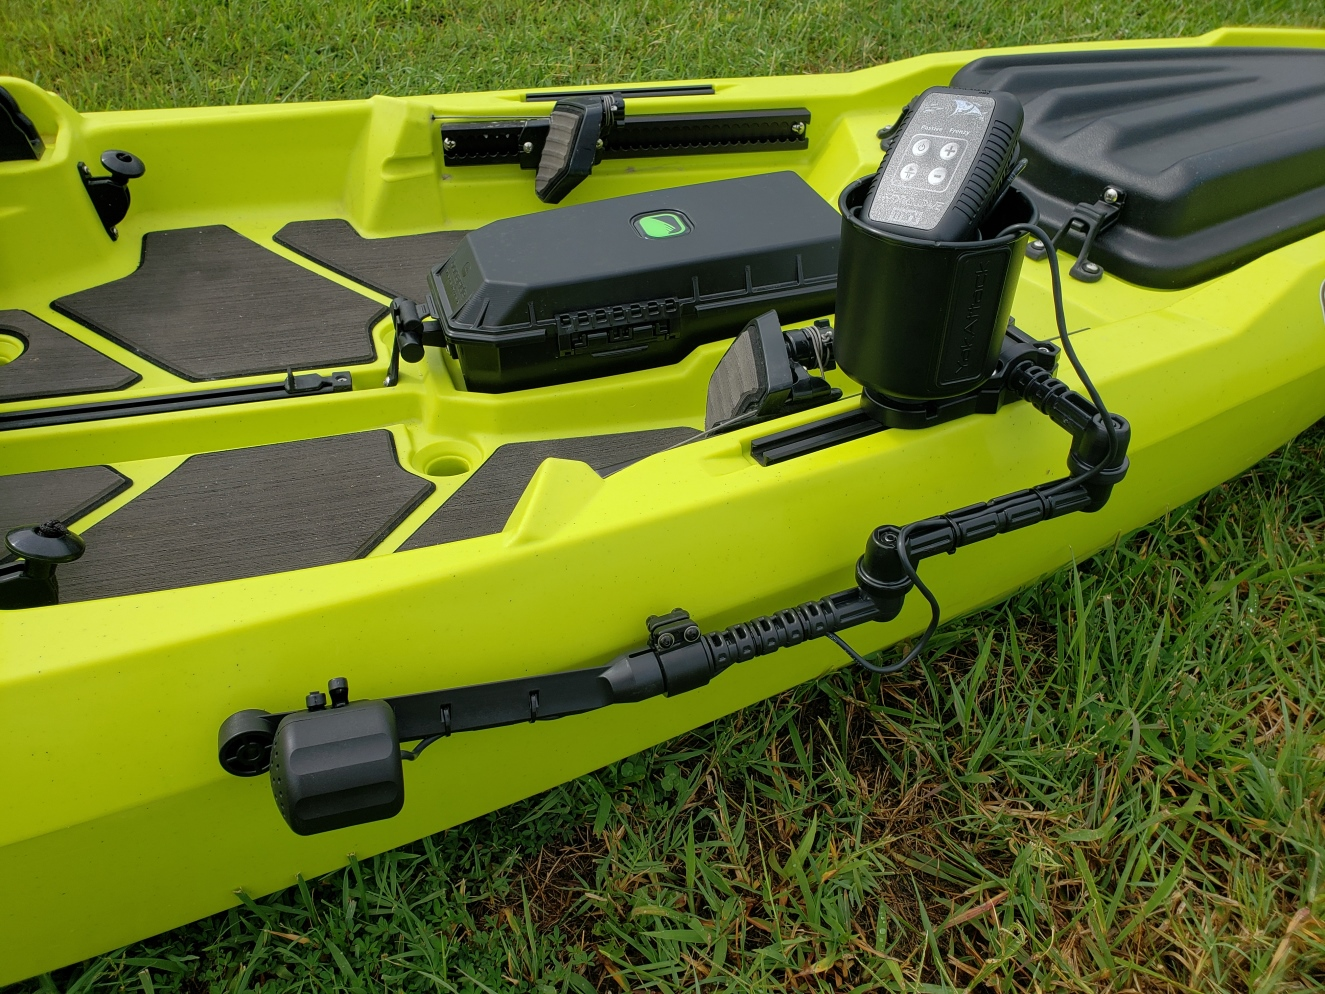 How to mount a hydro wave mini to a kayak